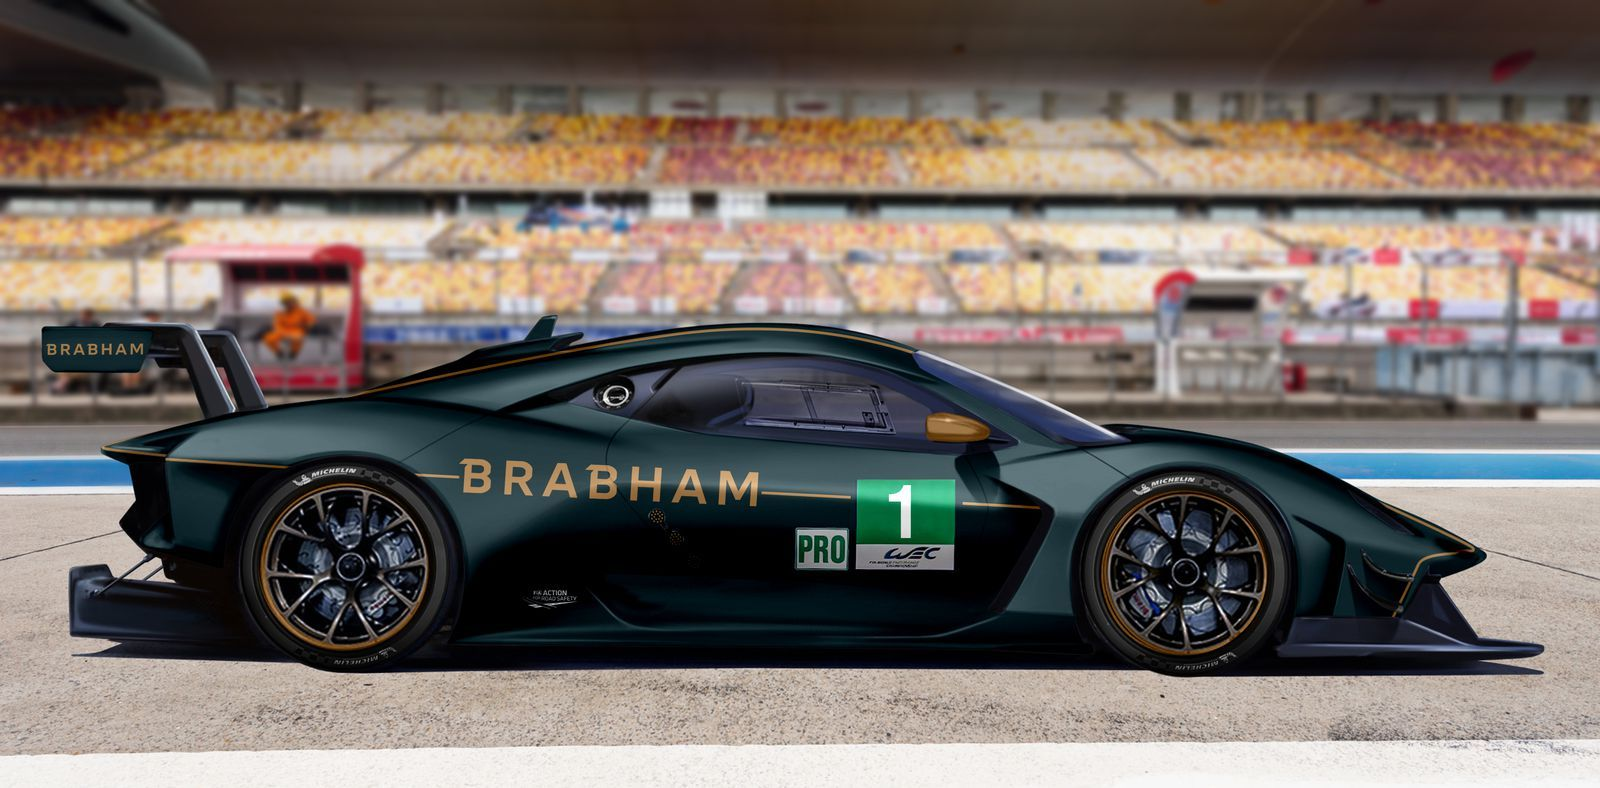 Brabham Is Going to Le Mans in 2021 Le mans, Racing car